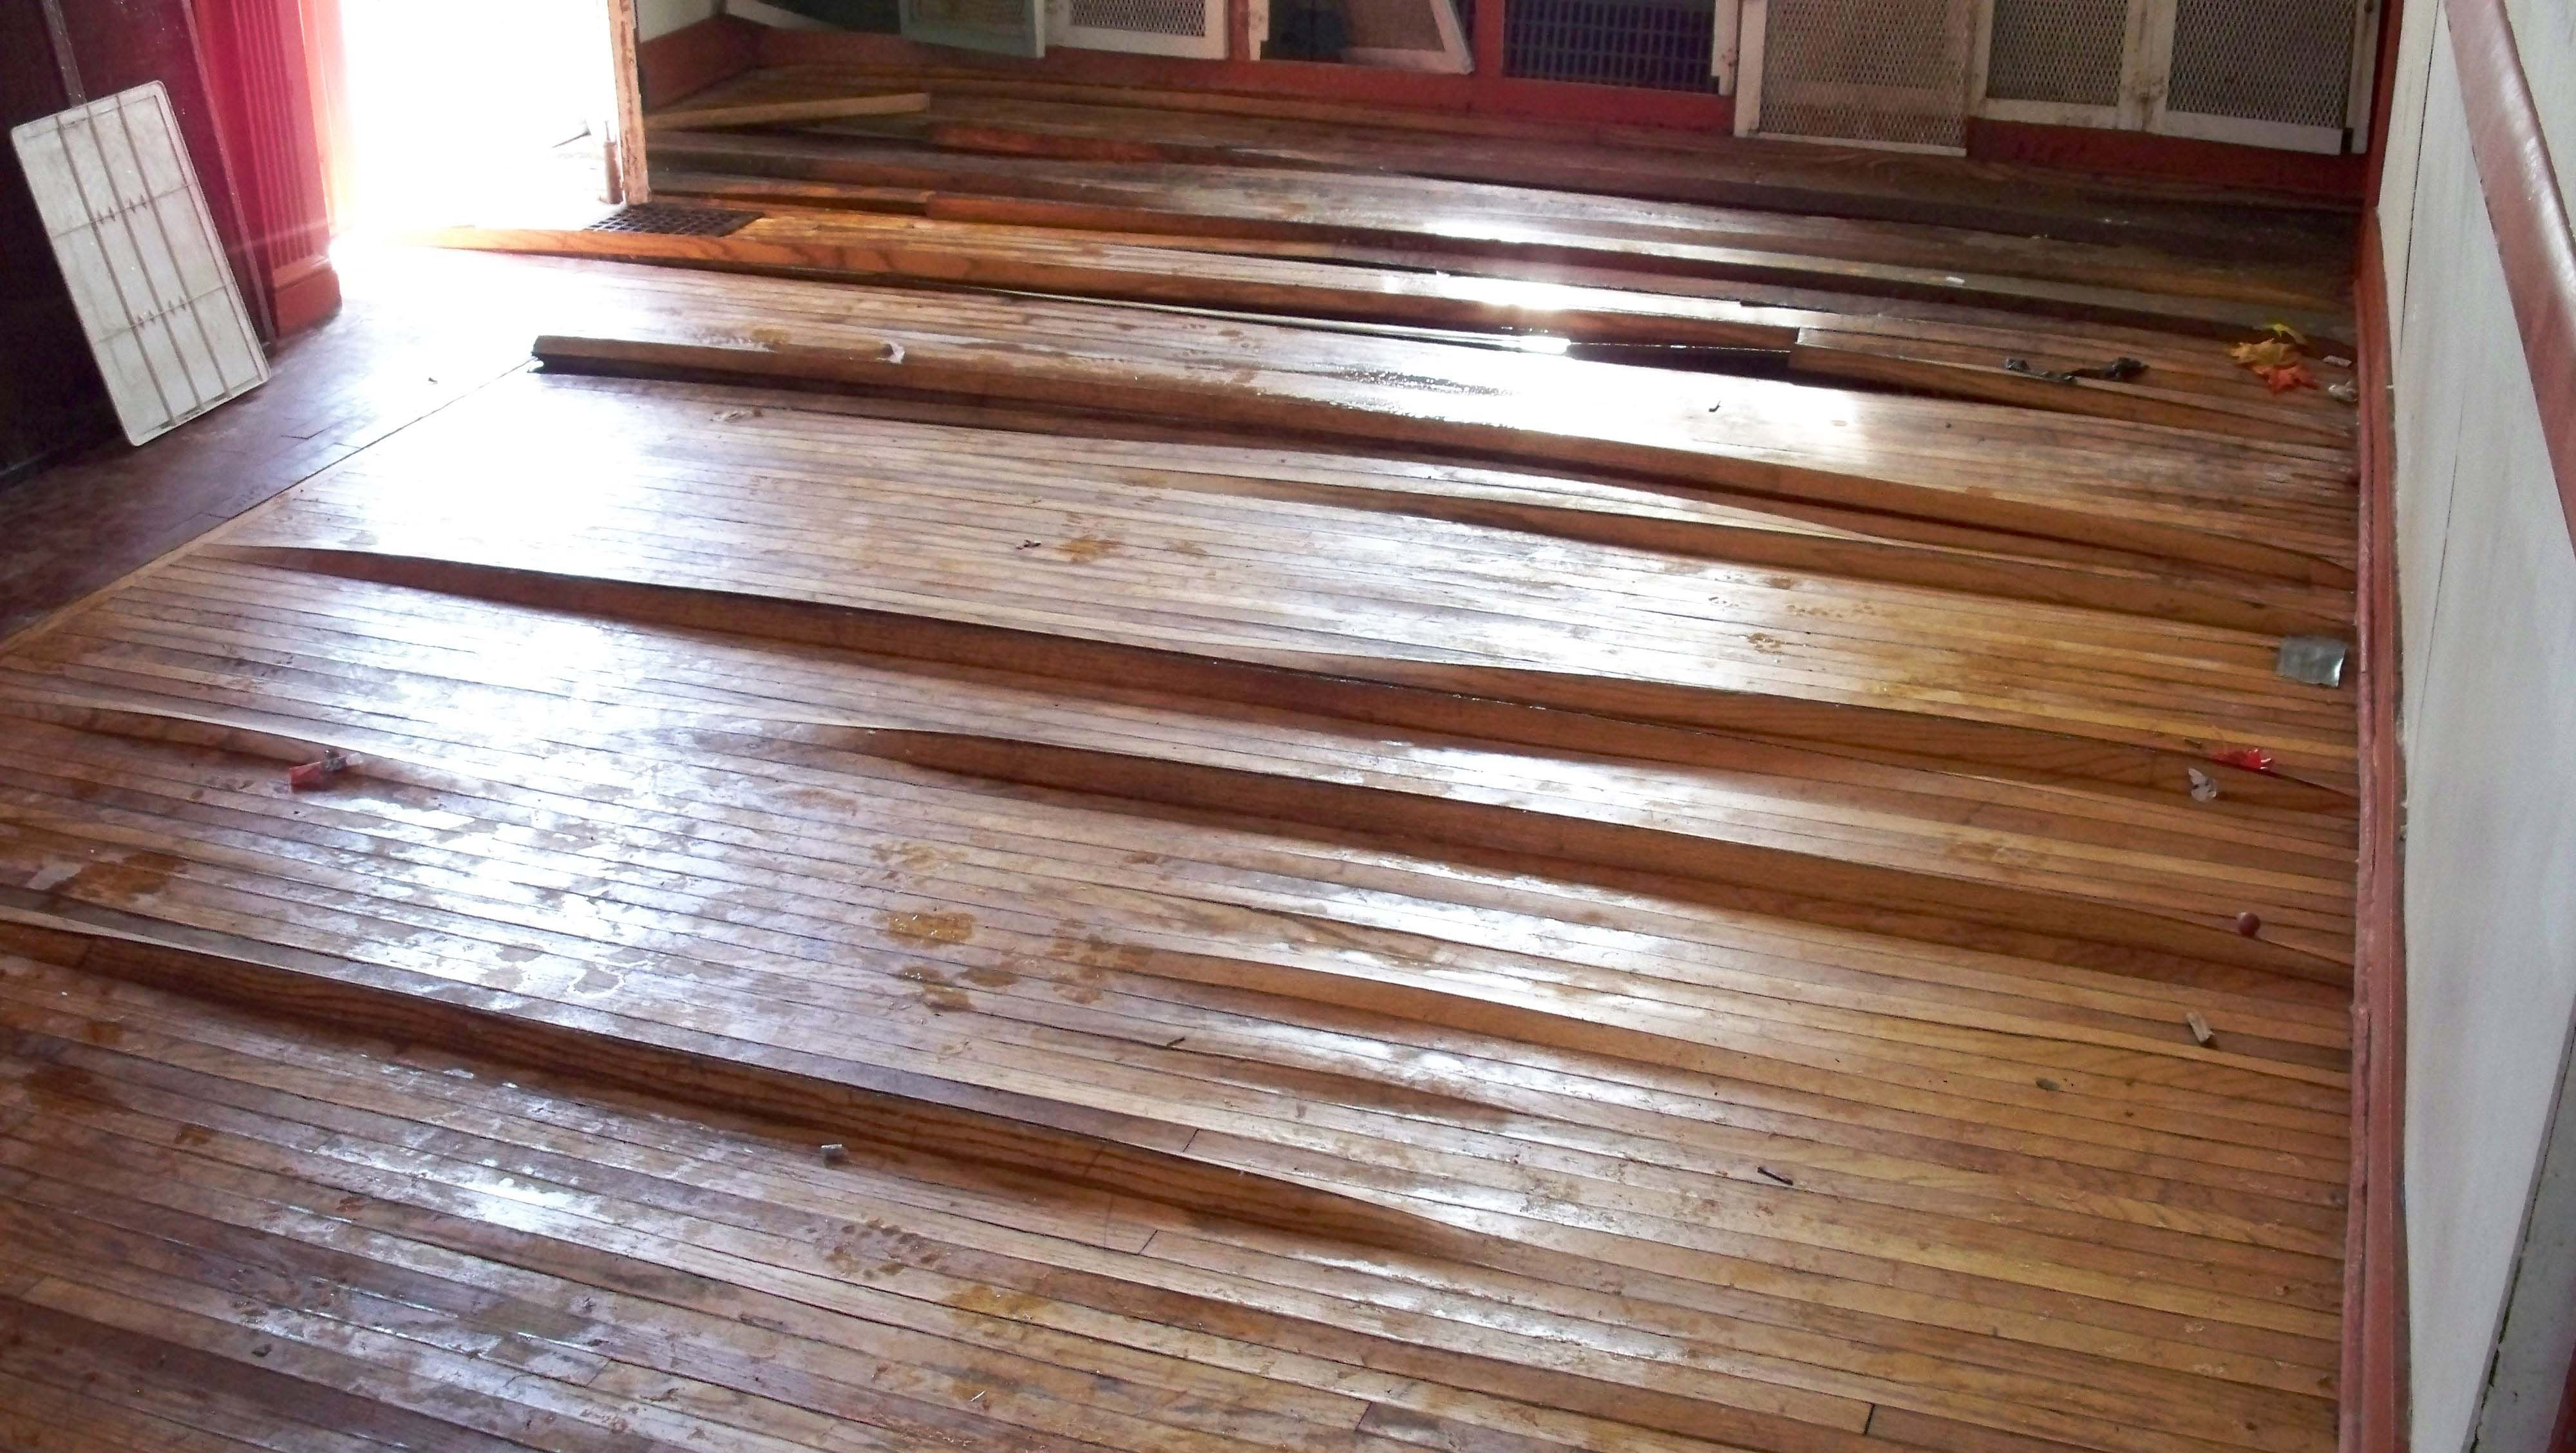 gew hardwood flooring of hardwood floor water damage warping hardwood floors pinterest intended for hardwood floor water damage warping